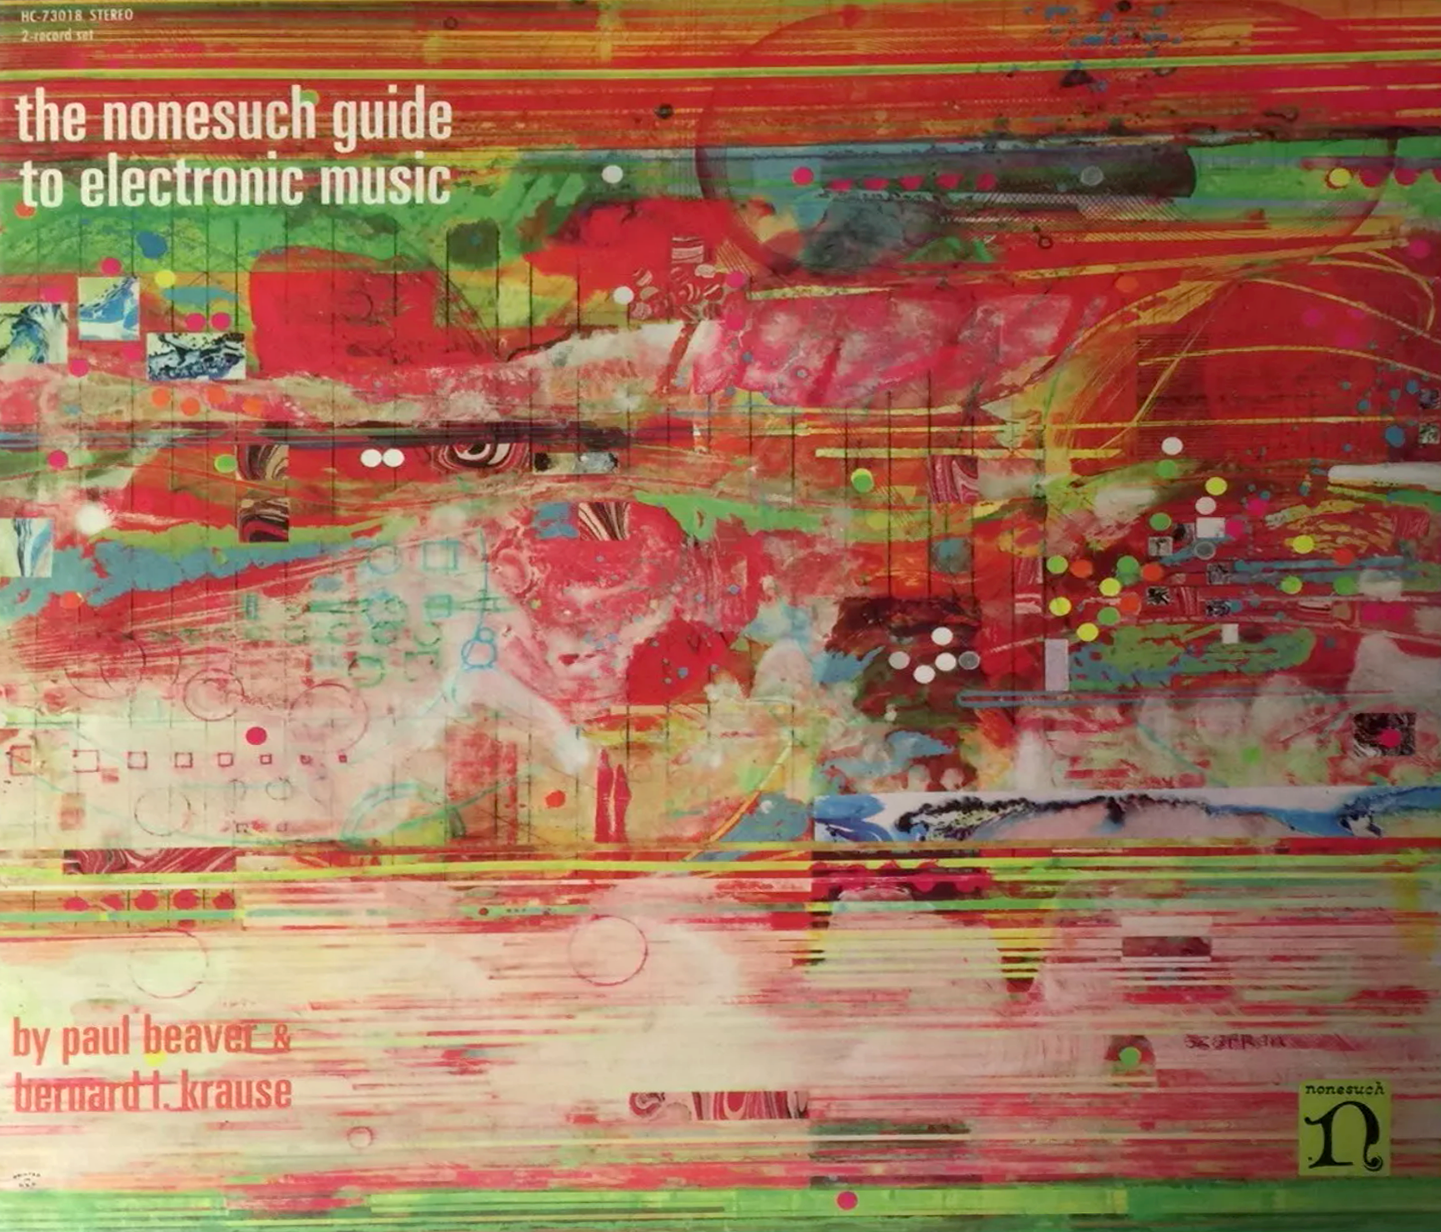 Nonesuch Records: The Nonesuch Guide to Electronic Music